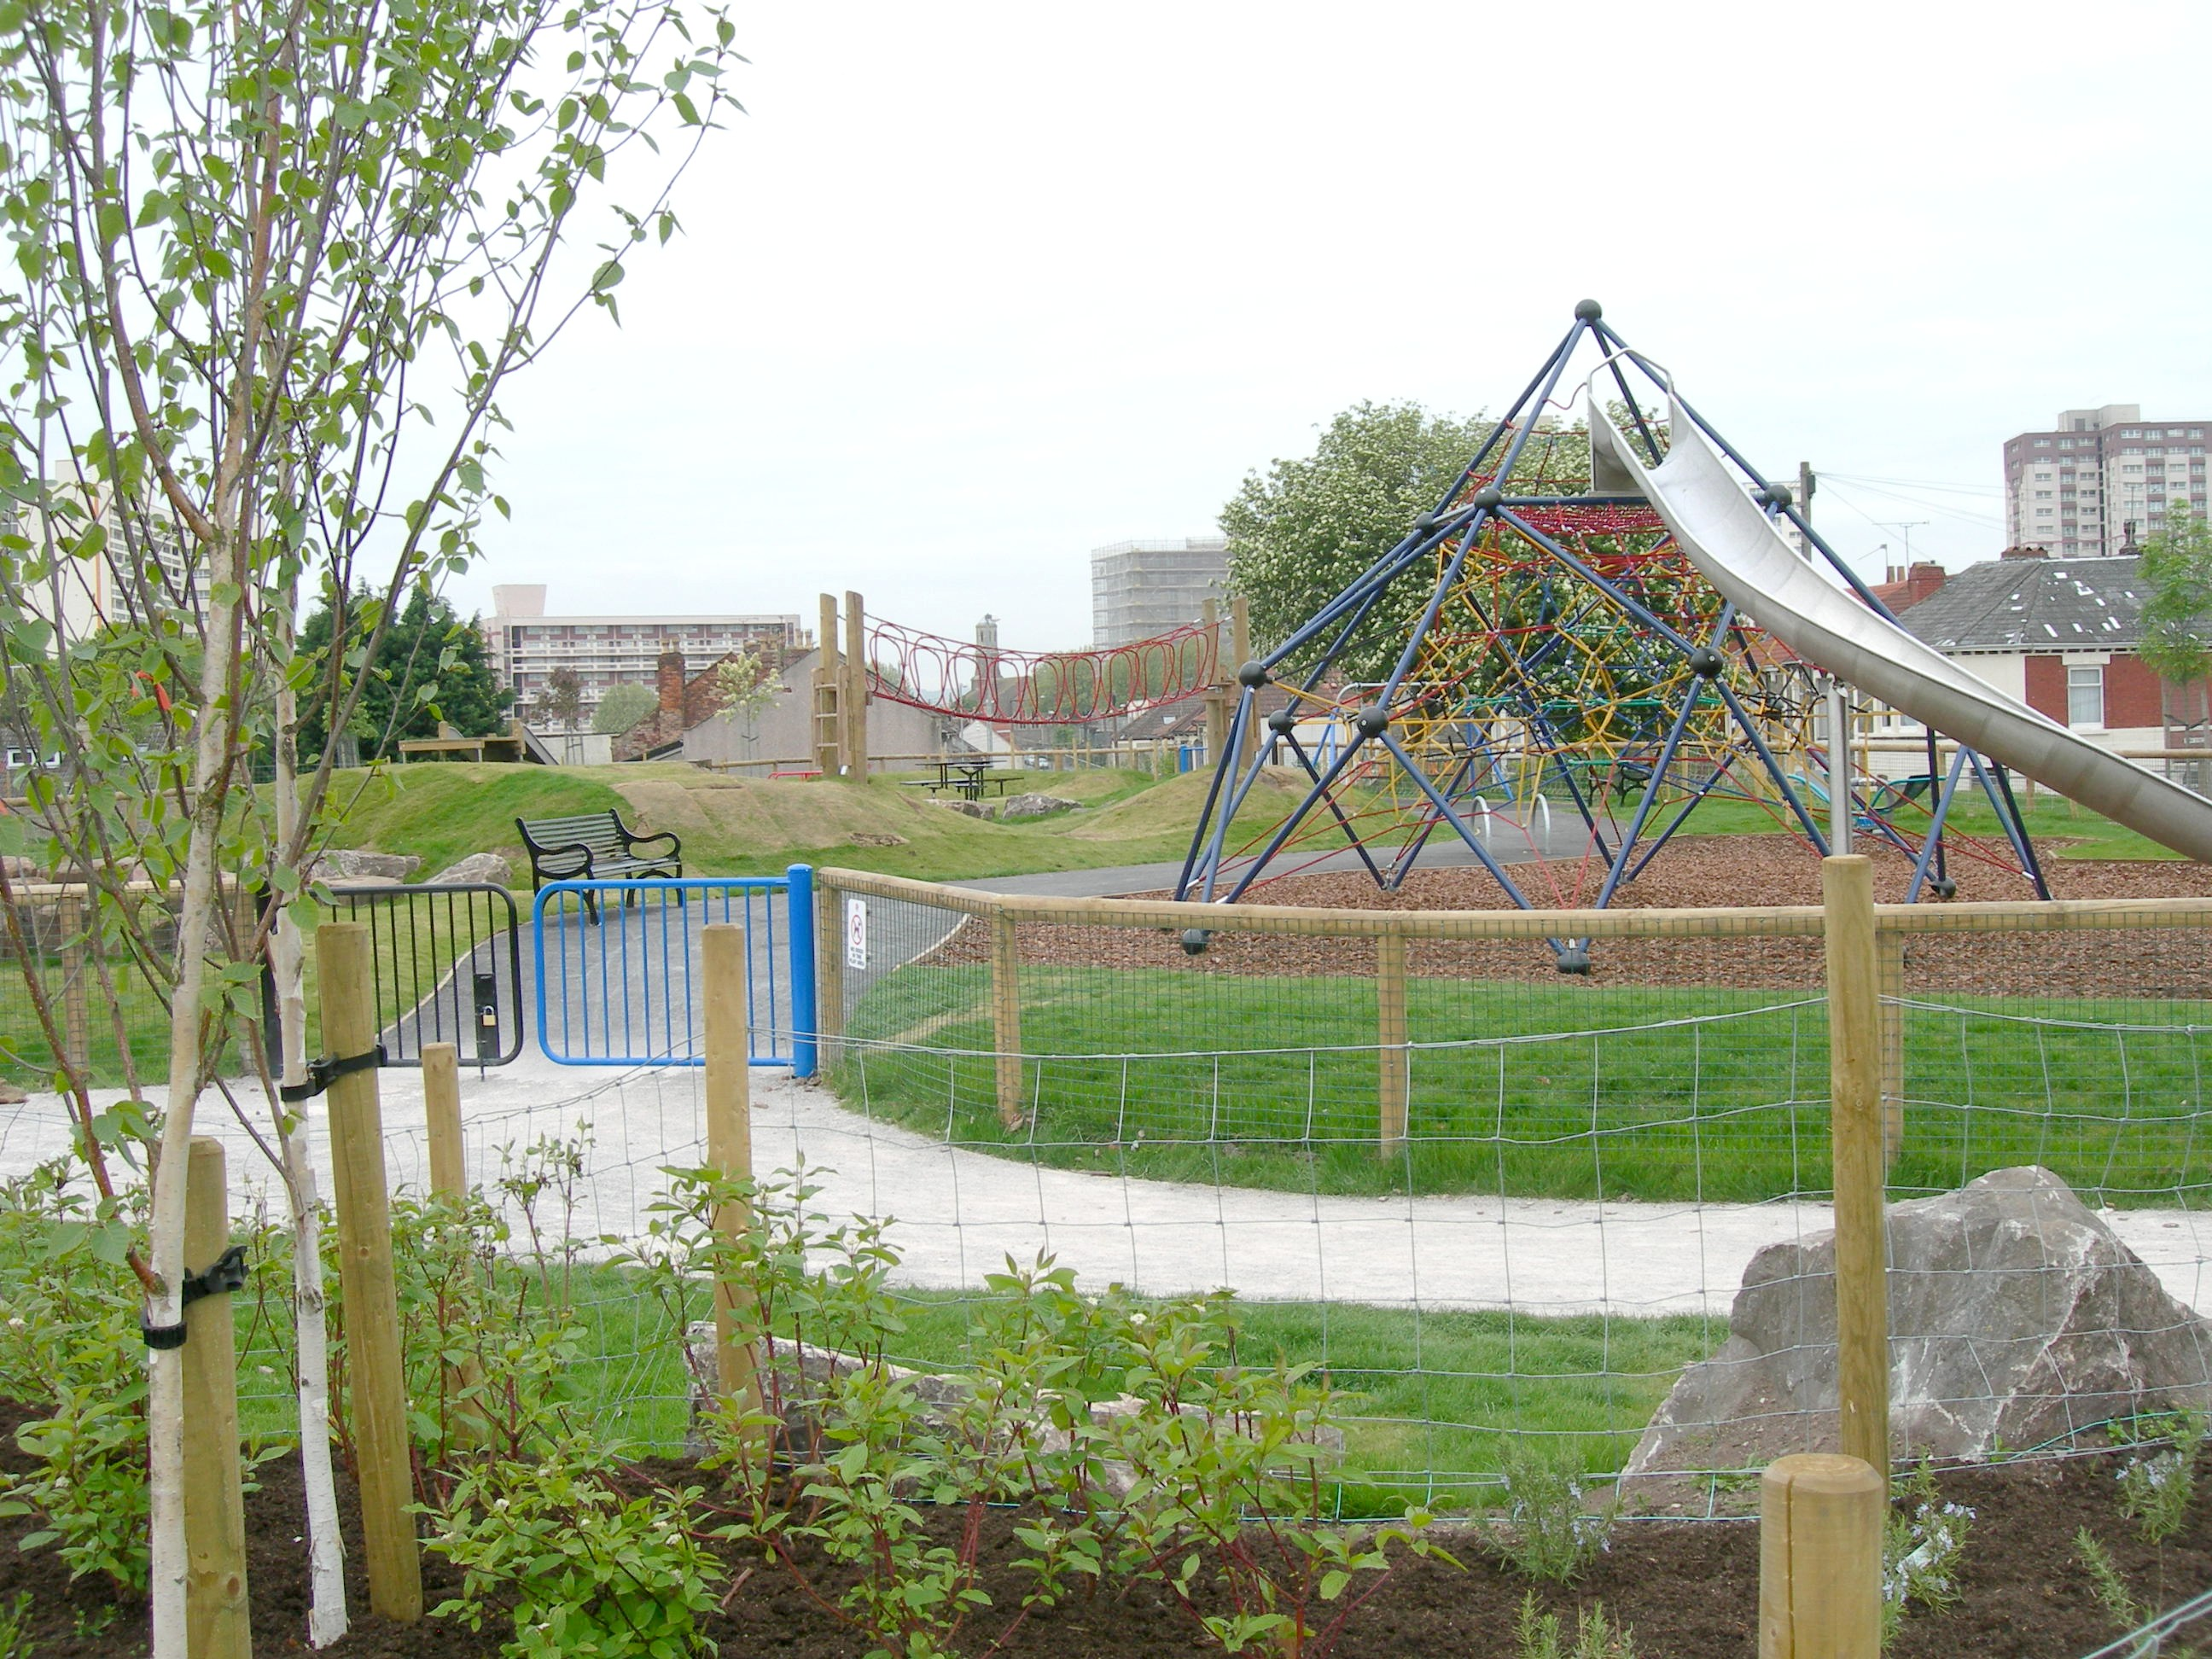 Children S Playgrounds Play Areas And Parks In Bristol